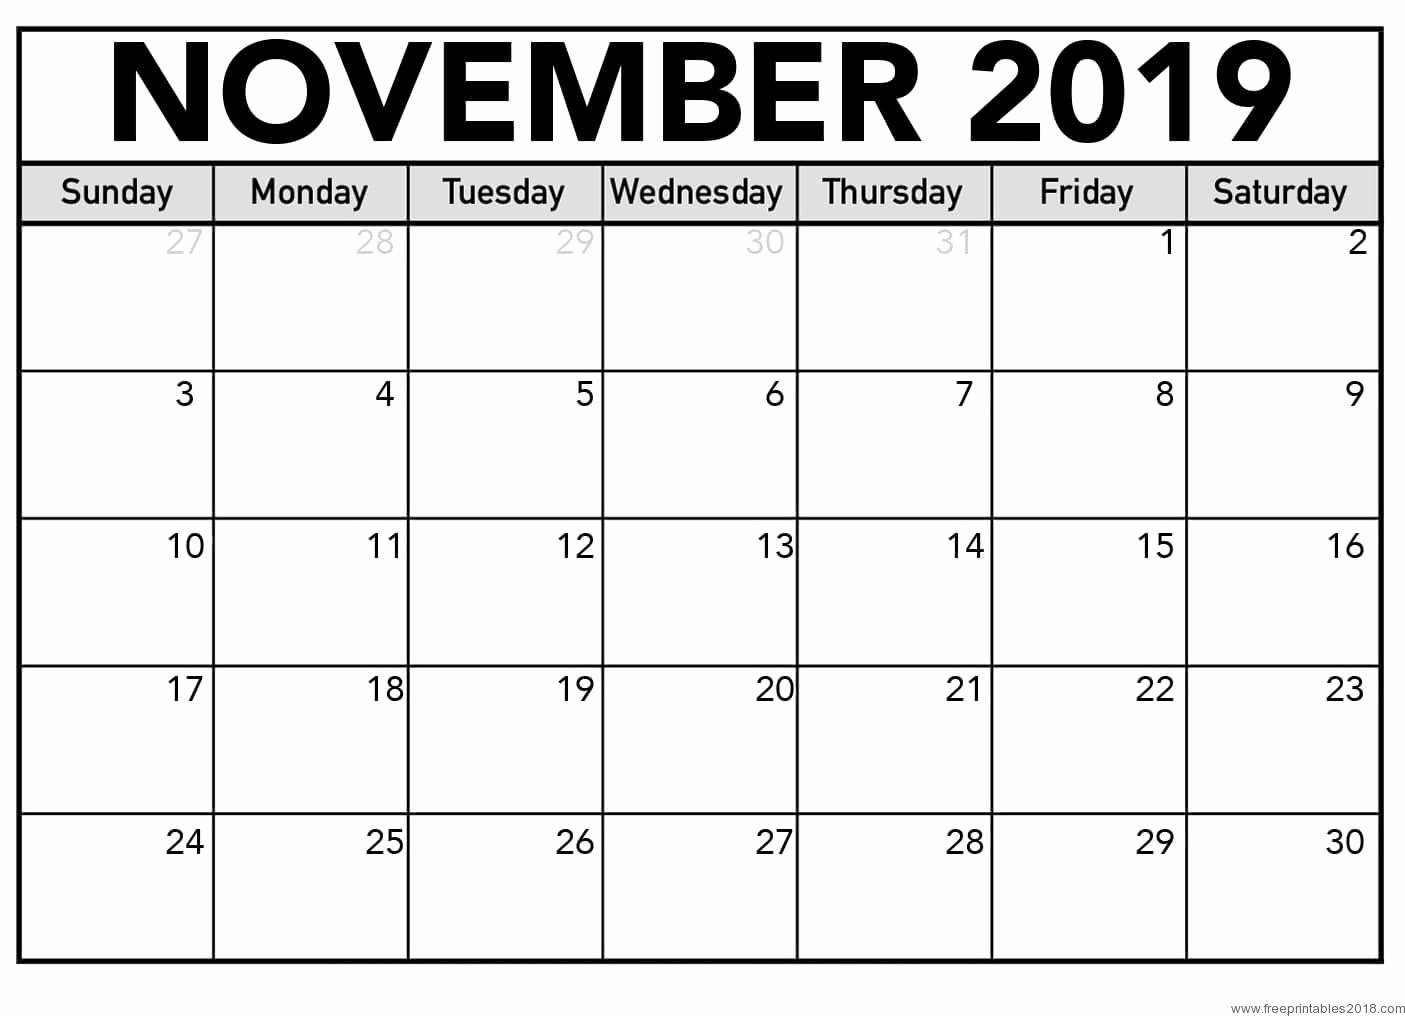 Free 2019 Calendar Template Inspirational Calendar November 2019 Free Printable Templates